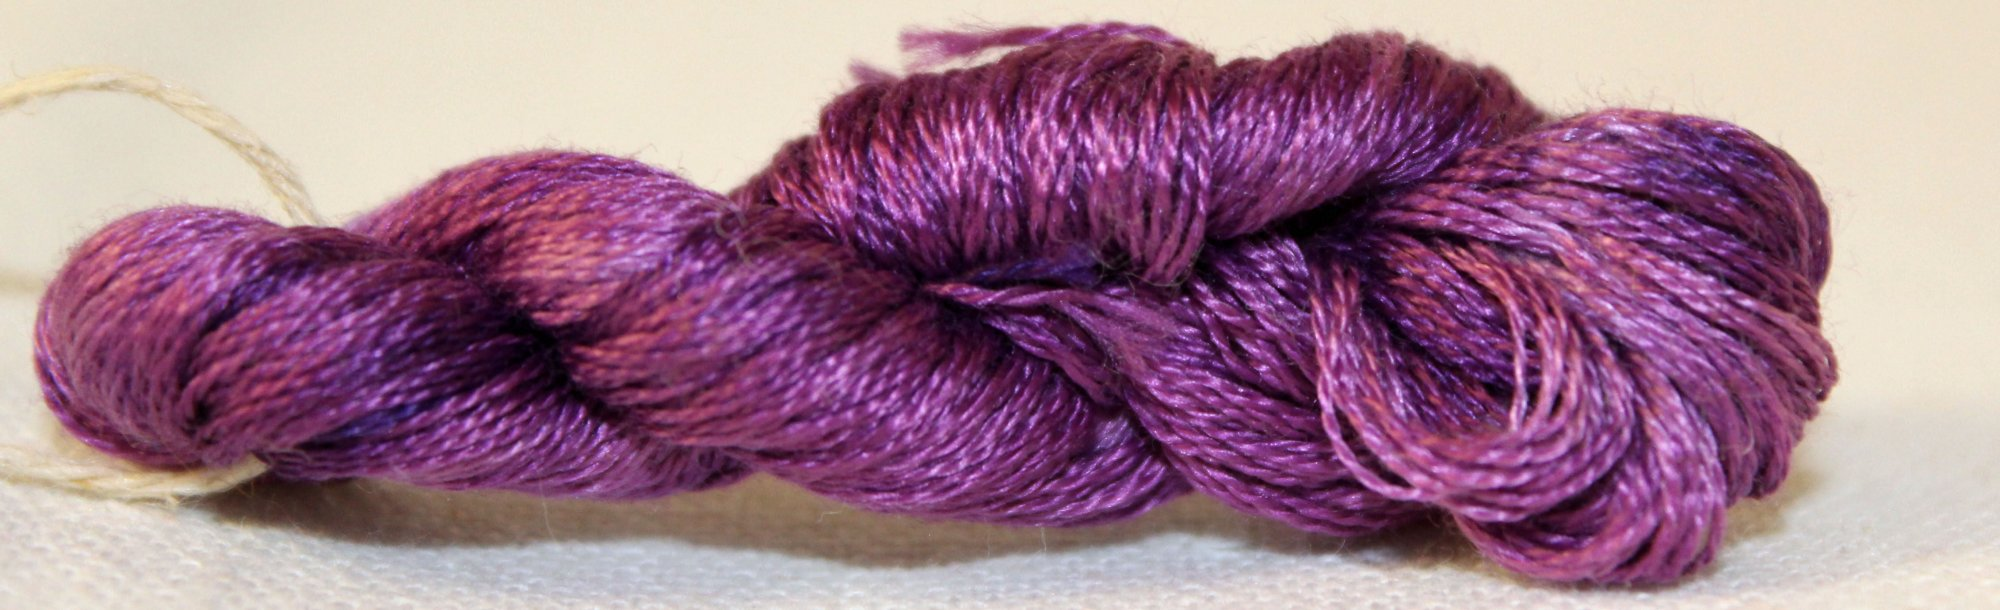 Violets- Hand-dyed Embroidery Floss